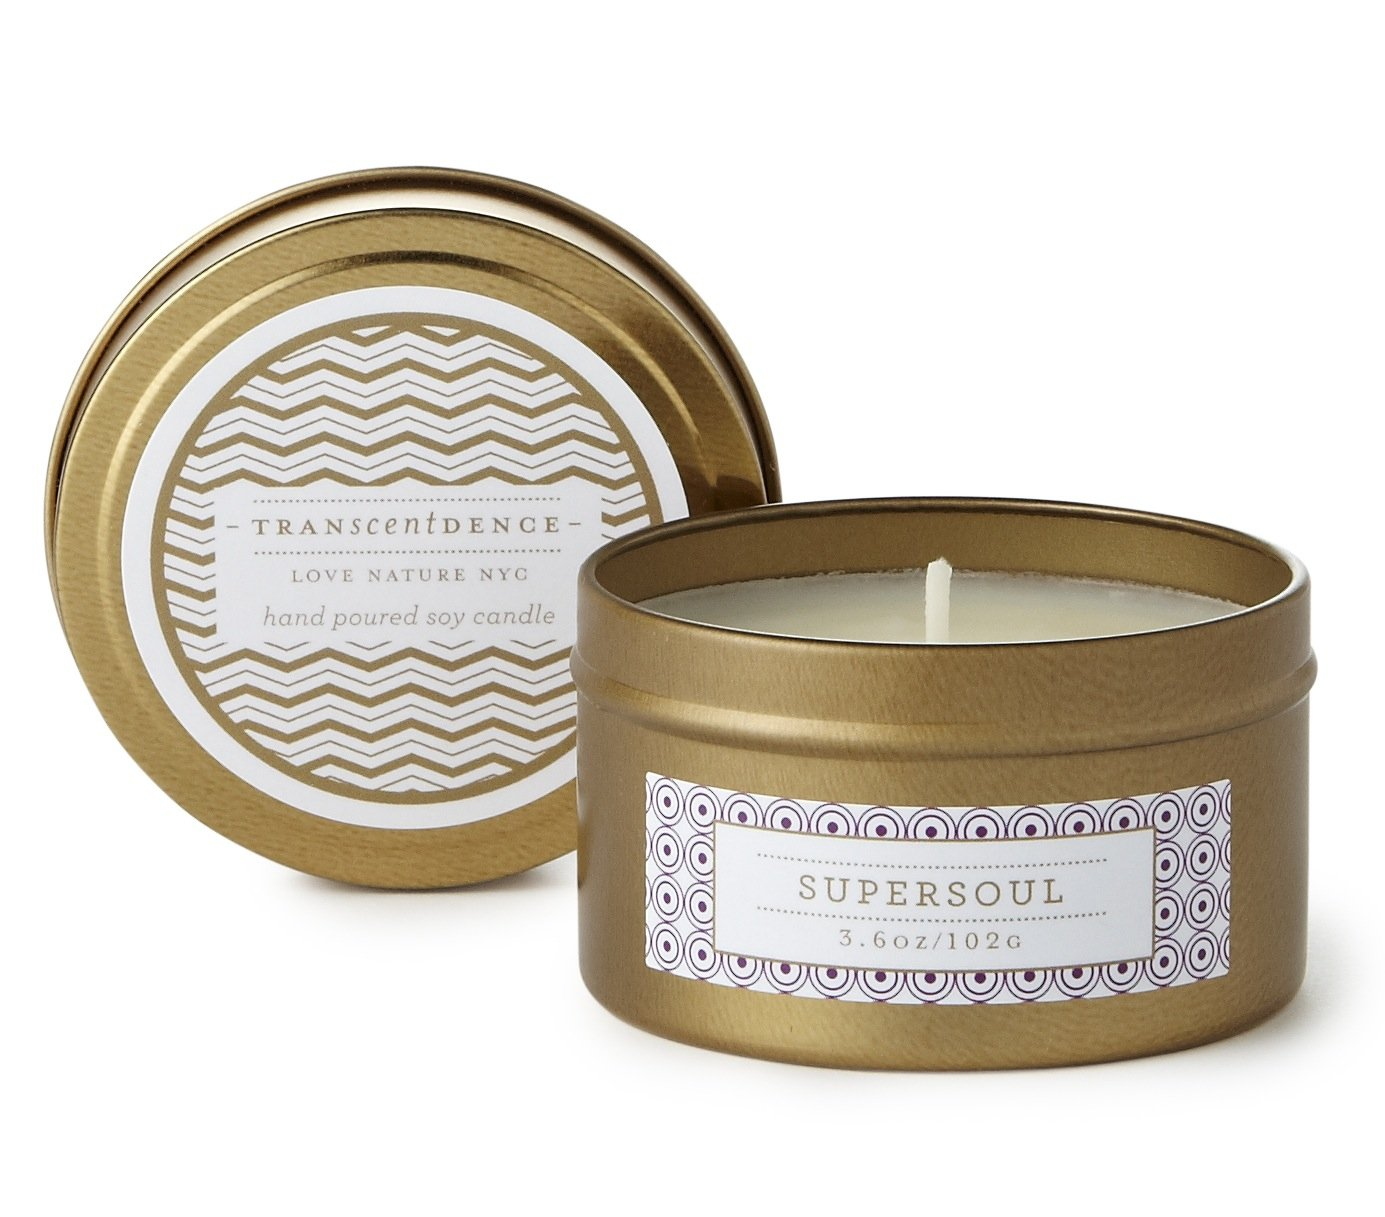 LOVE NATURE NYC Natural Soy Candle Tin, Supersoul Fragrance, Clean Burning Non-Toxic, Scent Notes of Nag Champa, Plumeria, Patchouli & Sandalwood, 25-30 Hours